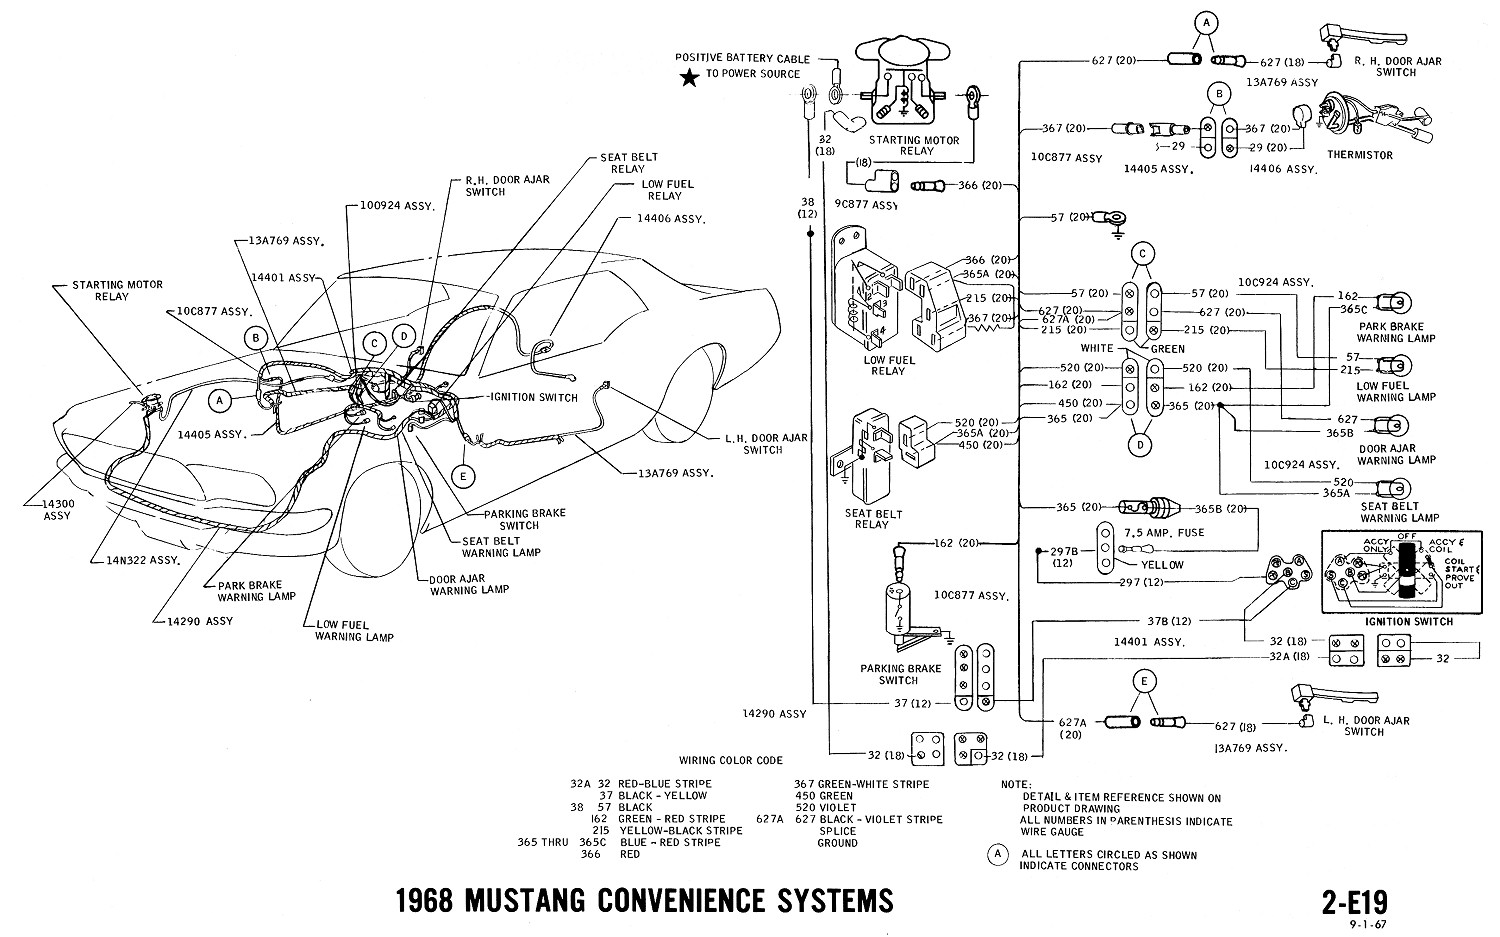 1965 vw beetle wiring diagram with 1968 Mustang Fuse Box Layout on Vw 1302 1303 S furthermore Volkswagen Super Beetle Wiring Diagram together with 82 Corvette Fuel Pressure also Vw Super Beetle Sunroofs Seals Parts 1971 1972 moreover 4ohvd Lincoln Continental Power Windows Not Operate.